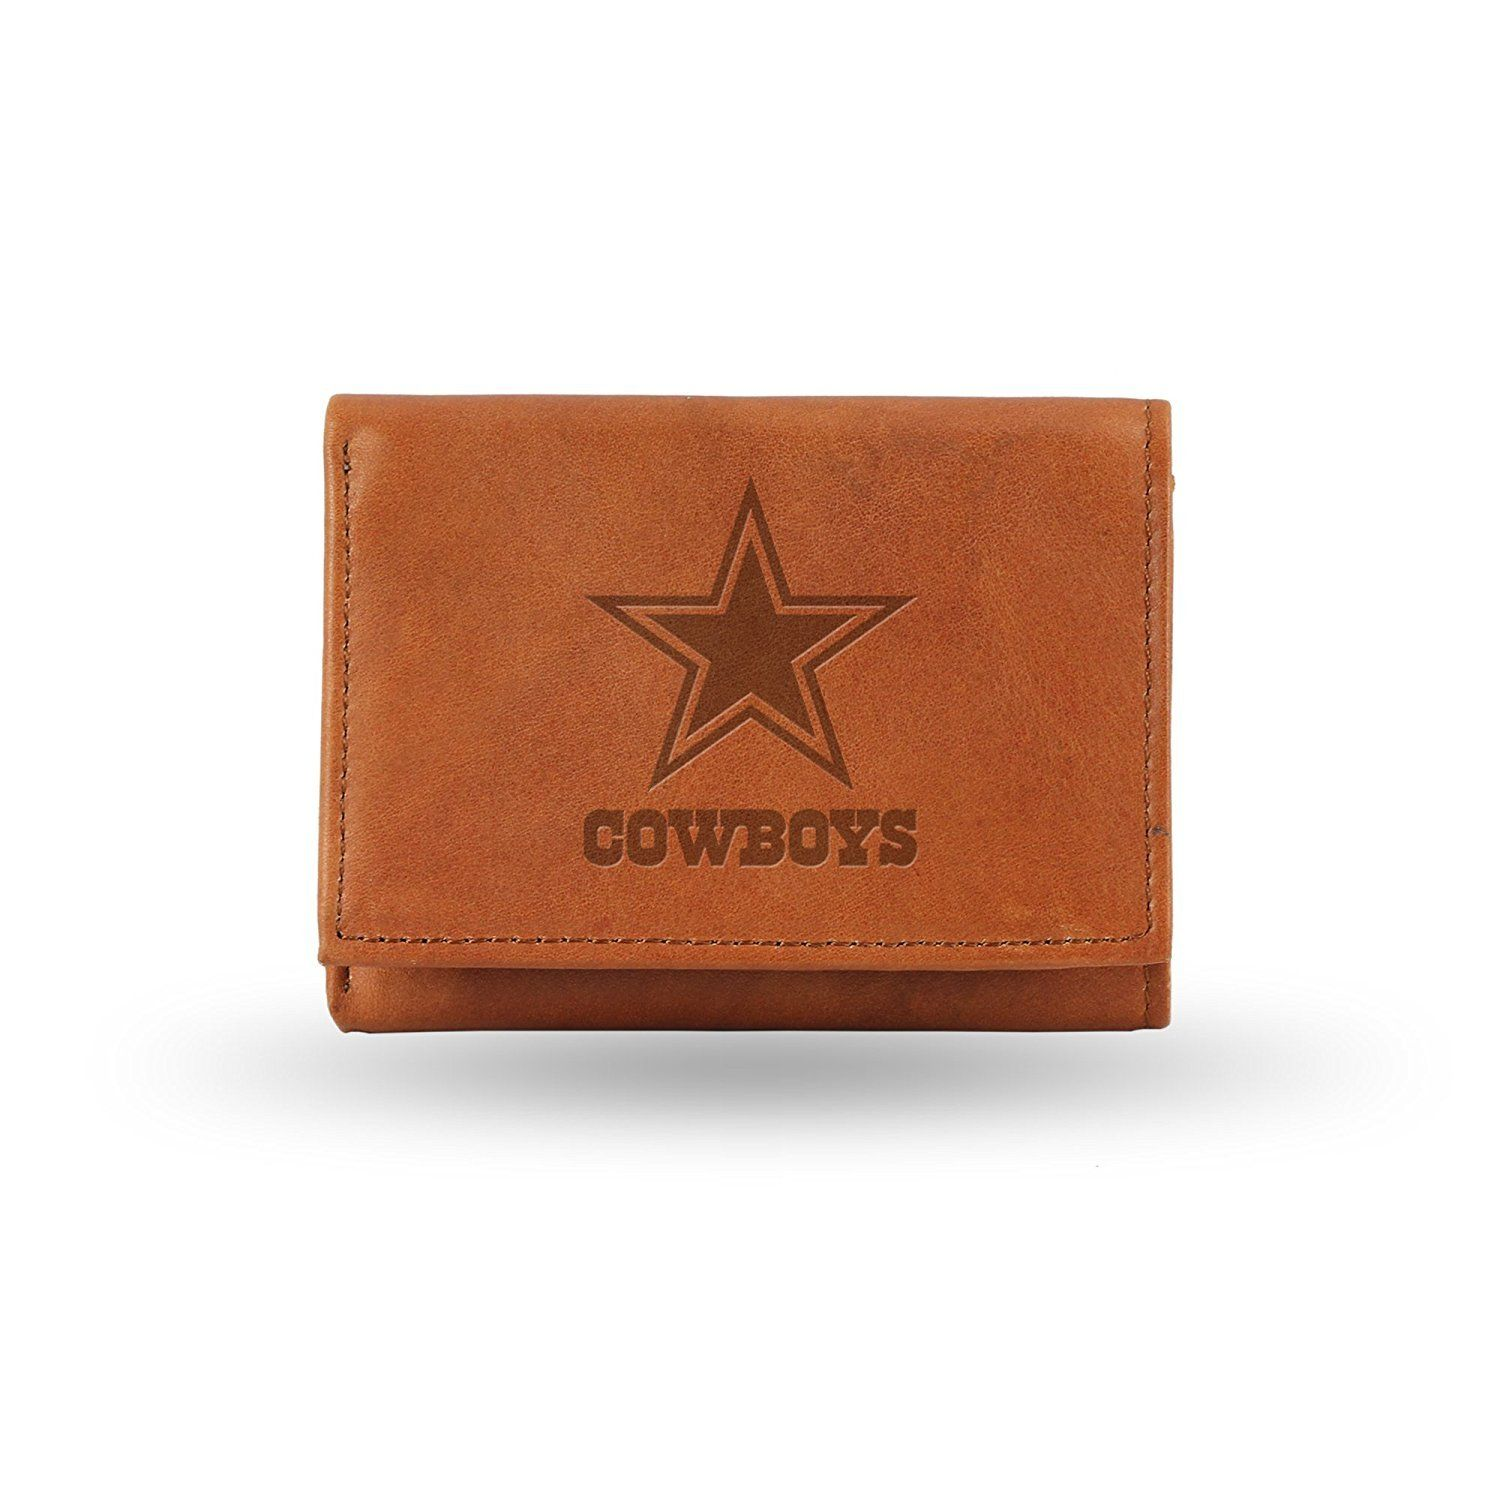 Rico Dallas Cowboys NFL Embossed Leather Trifold Wallet